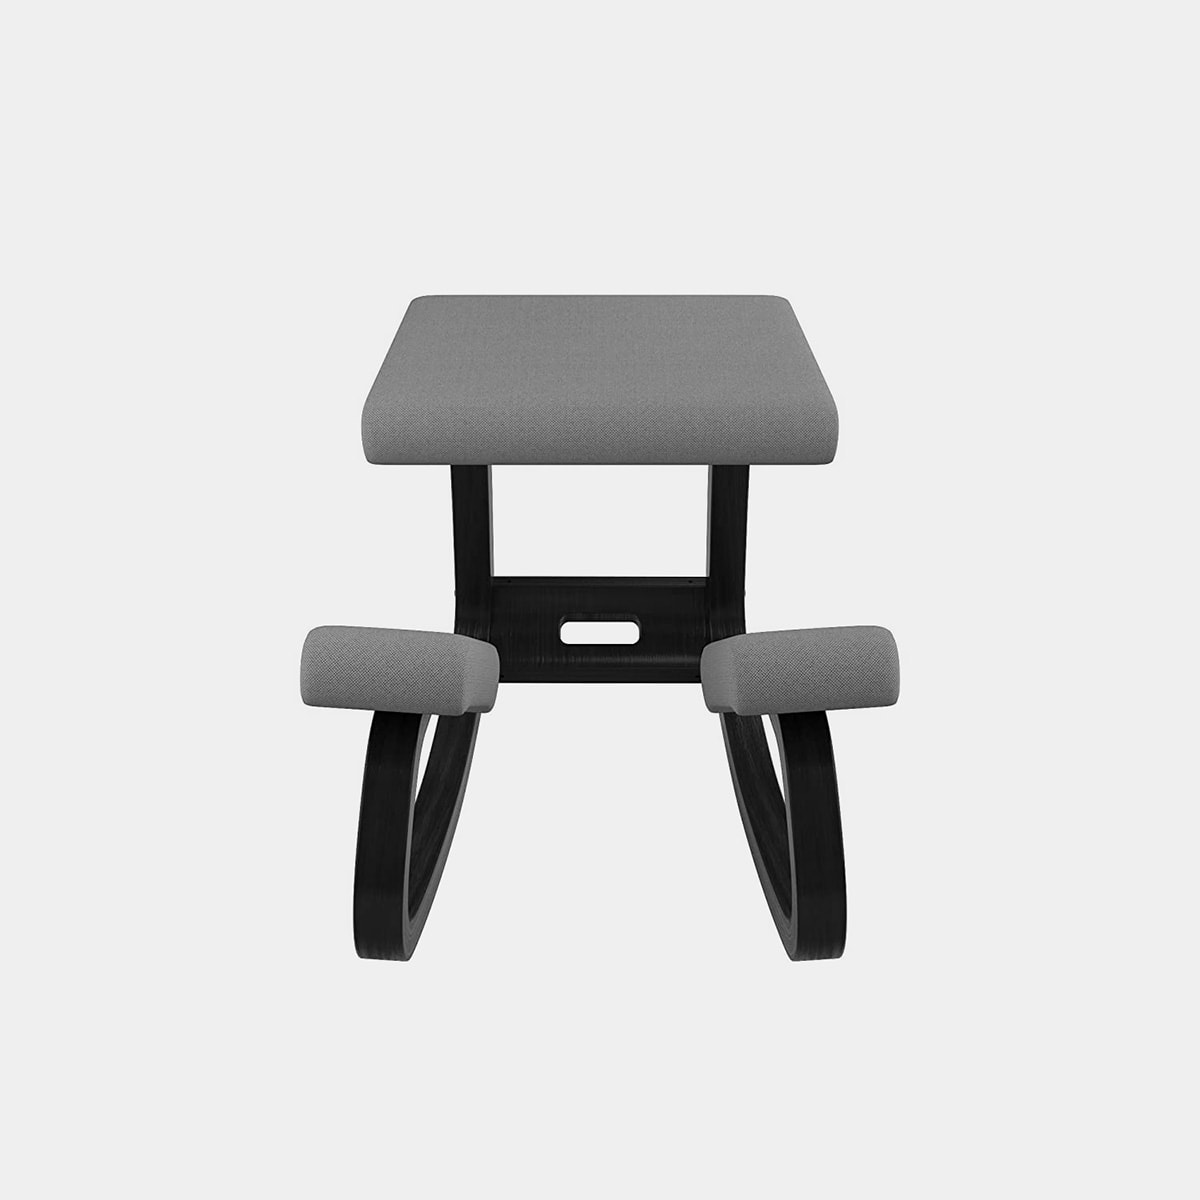 Selection: Minimal Office Chair